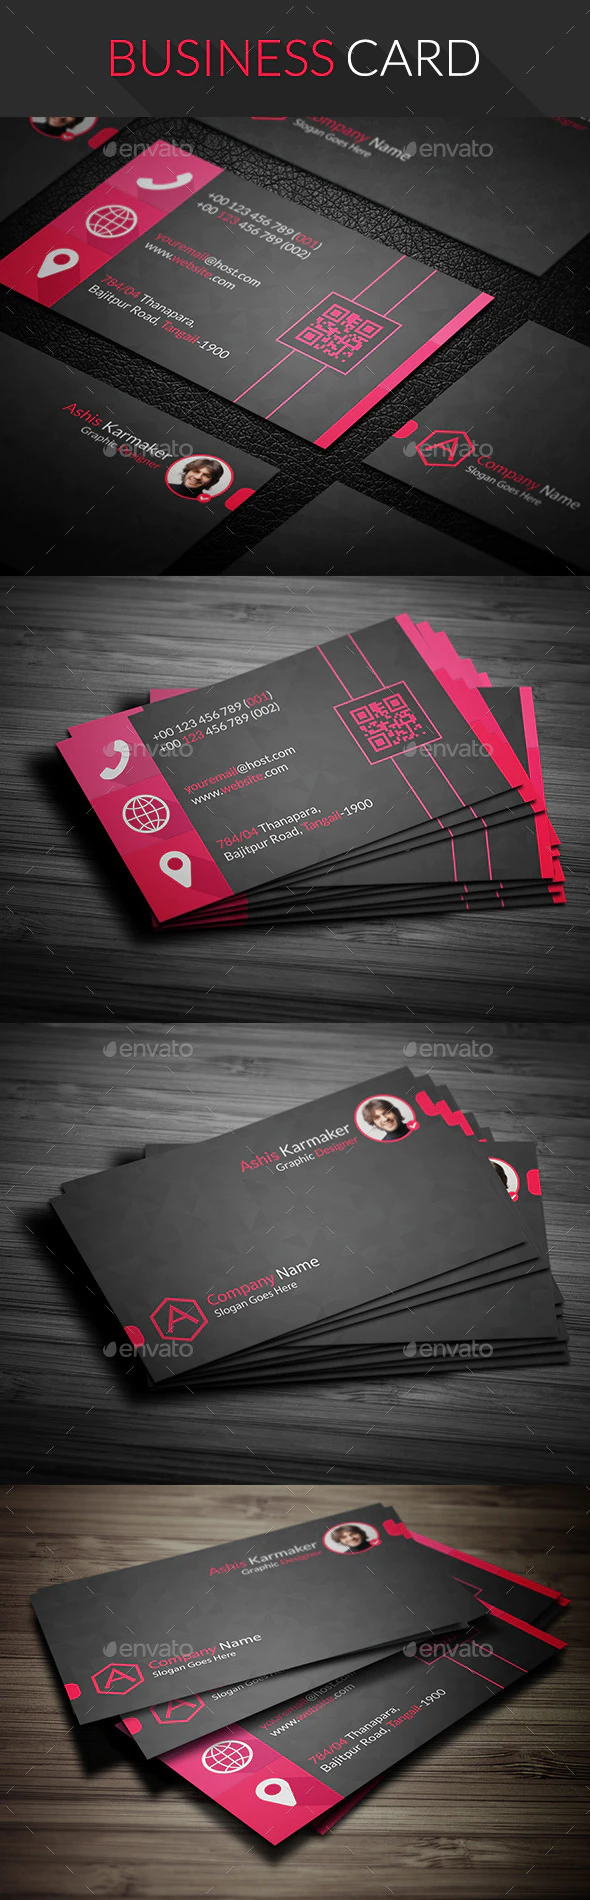 Hope Business Card Printing Business Cards Business Cards Business Card Design